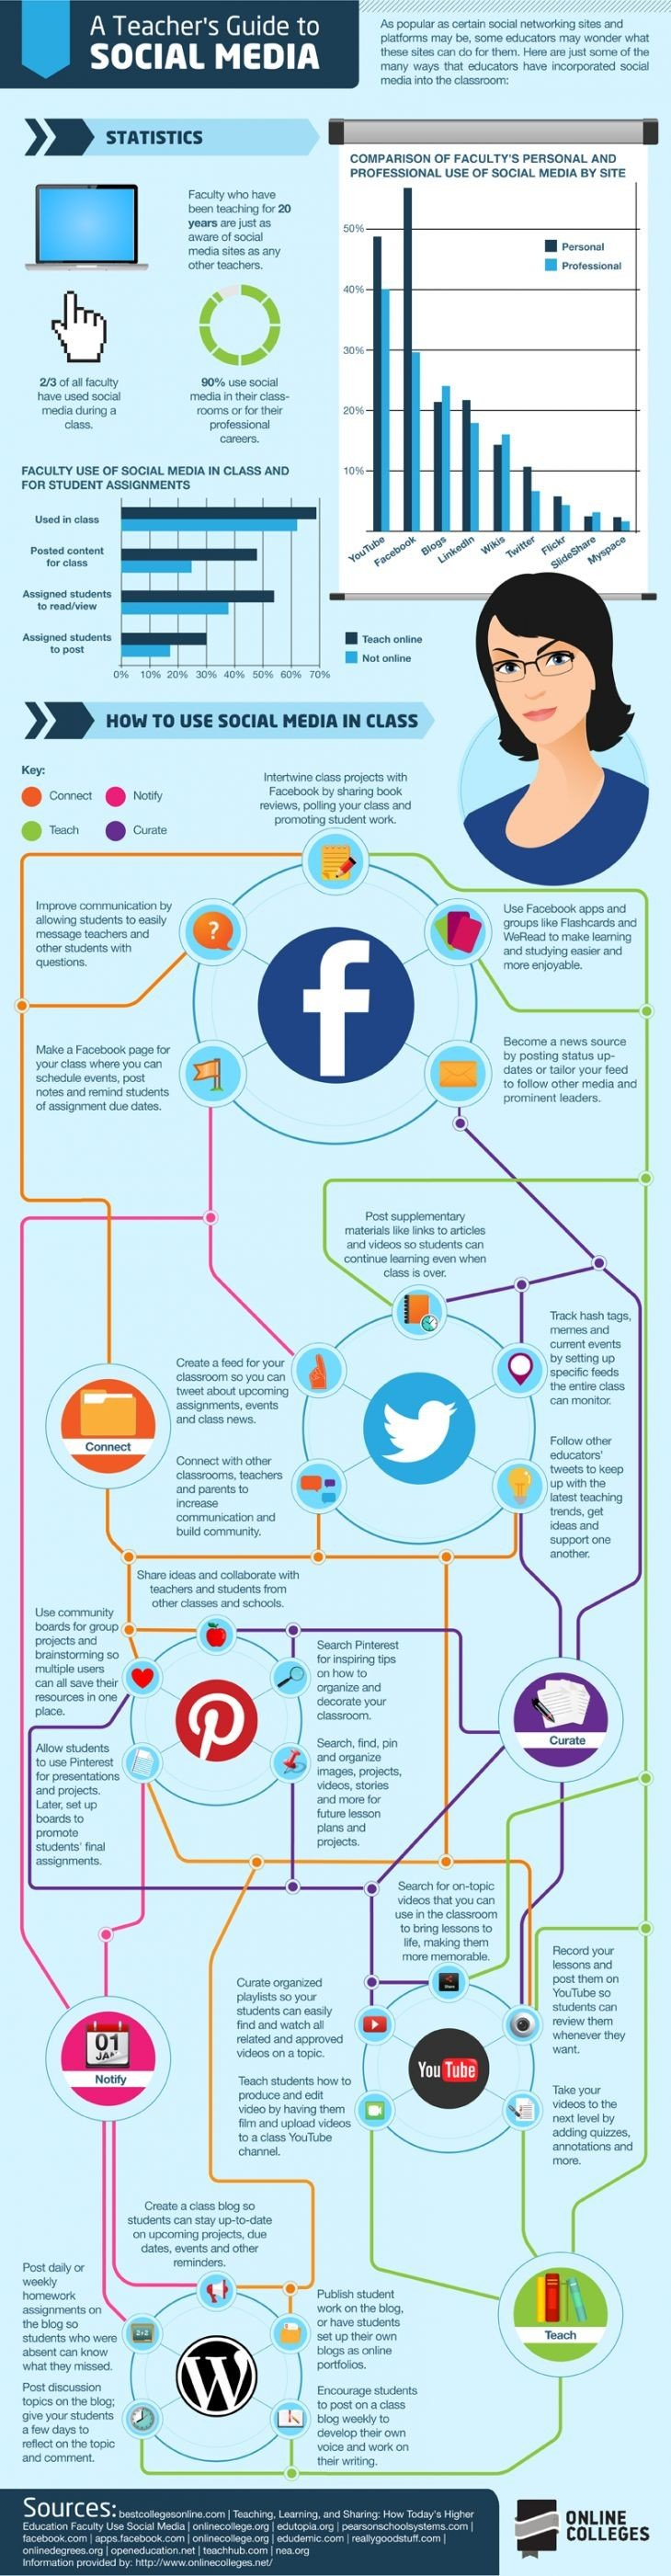 The teacher guide to #Social_Media #SMM #Education #Infographic